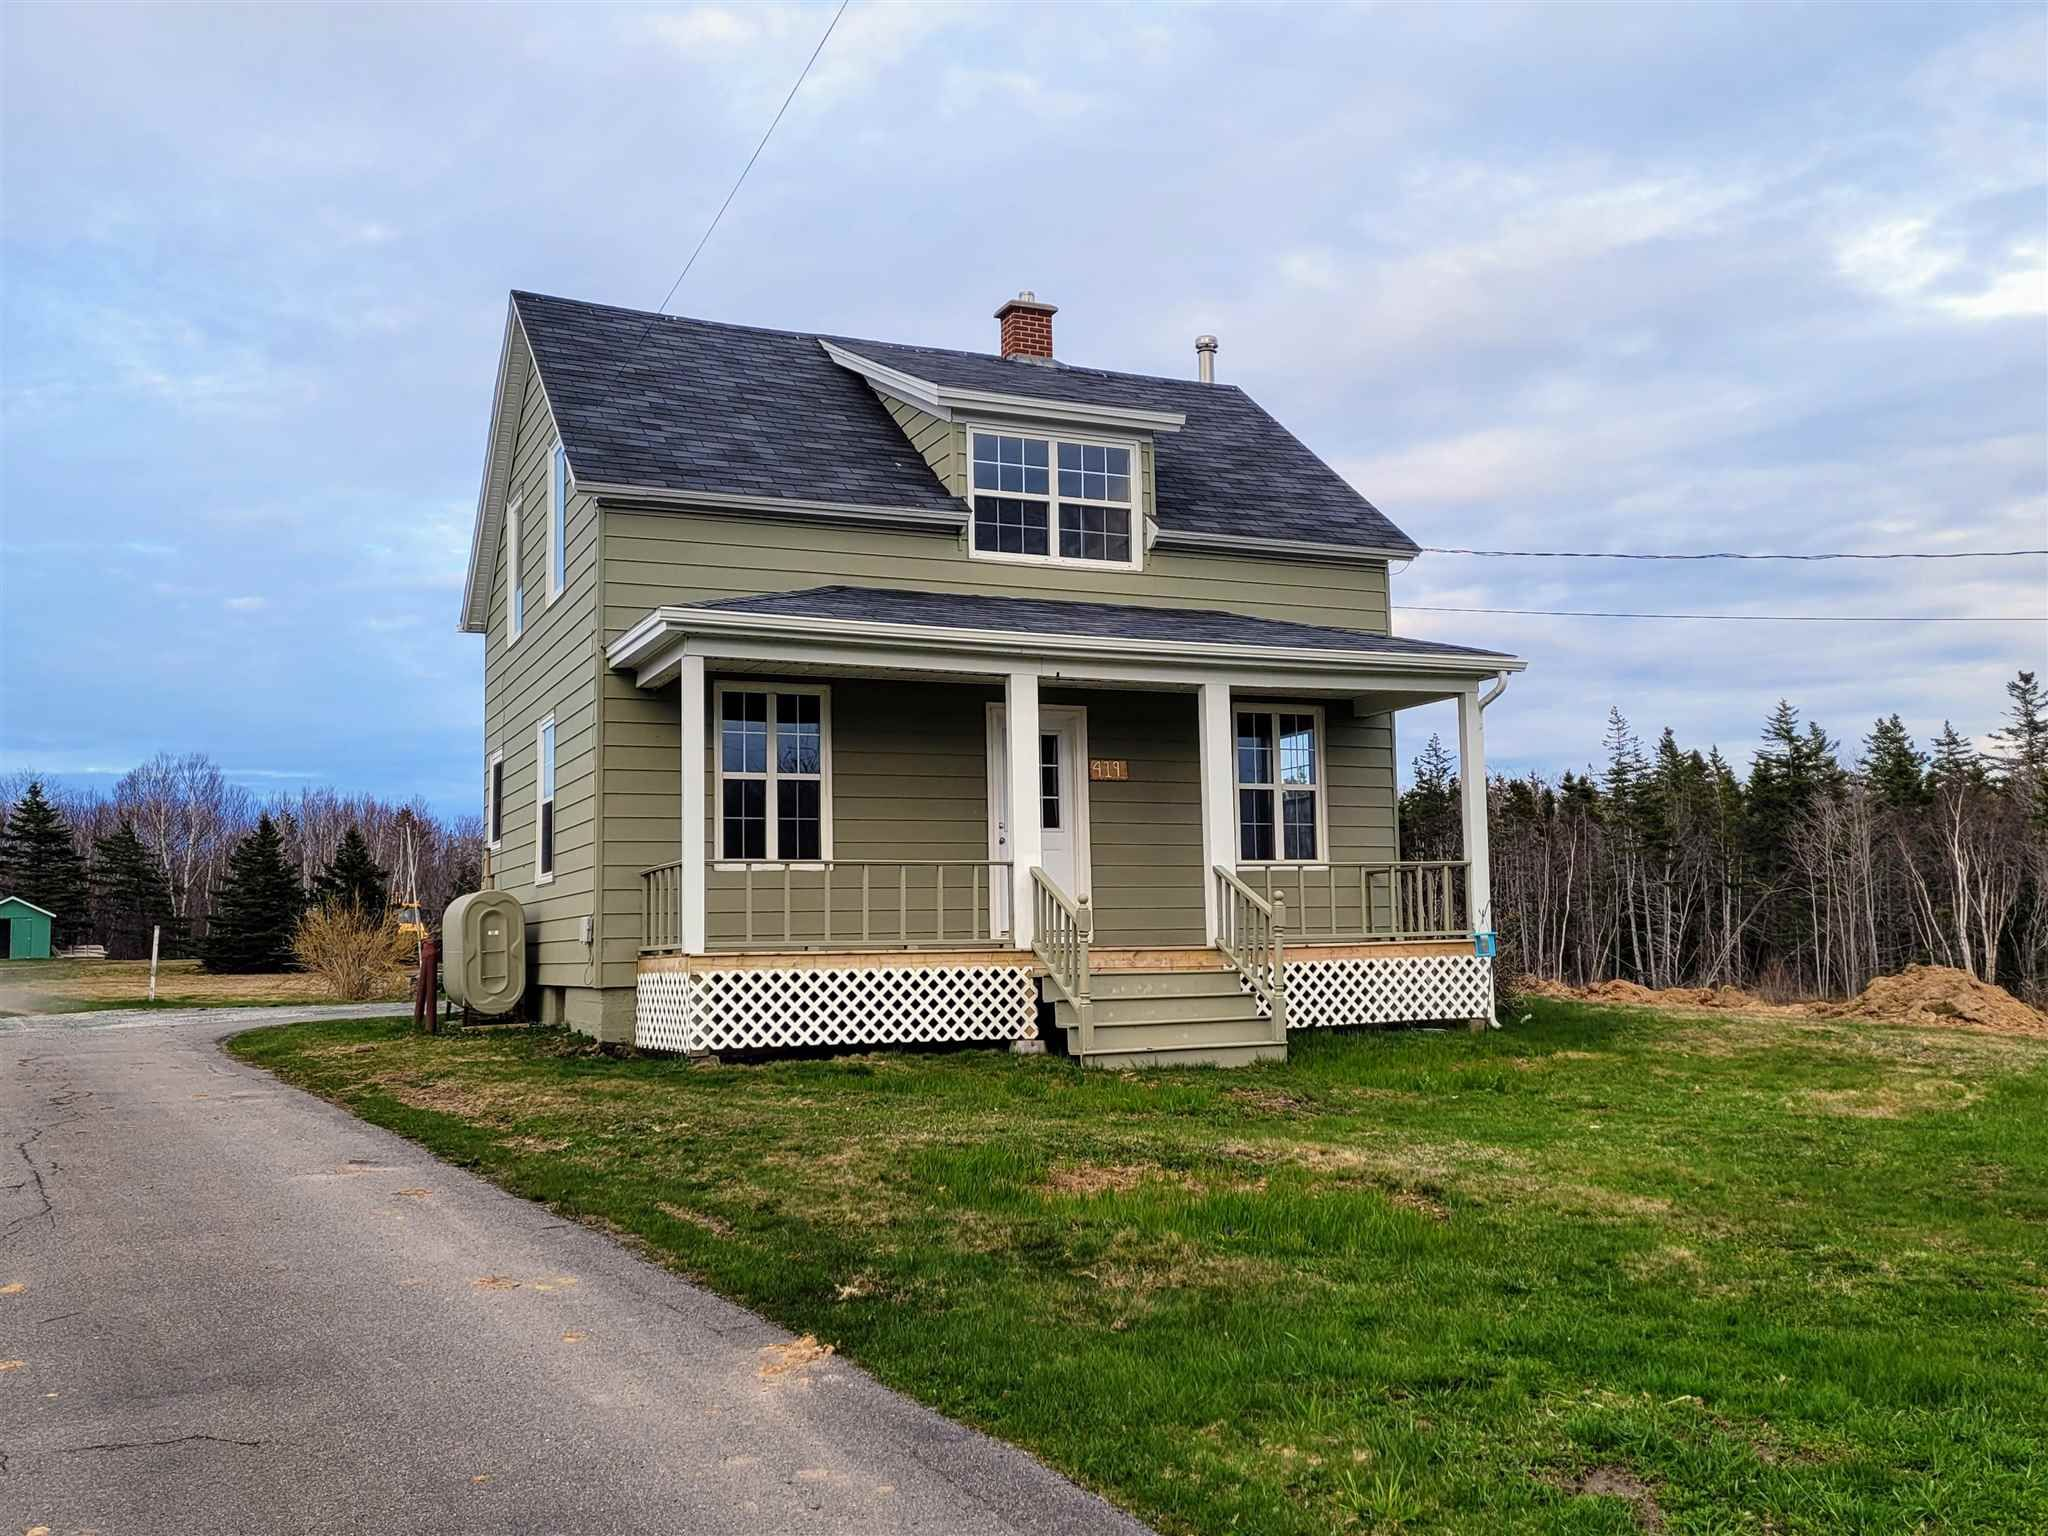 Main Photo: 419 Mitchell Avenue in Dominion: 203-Glace Bay Residential for sale (Cape Breton)  : MLS®# 202111083